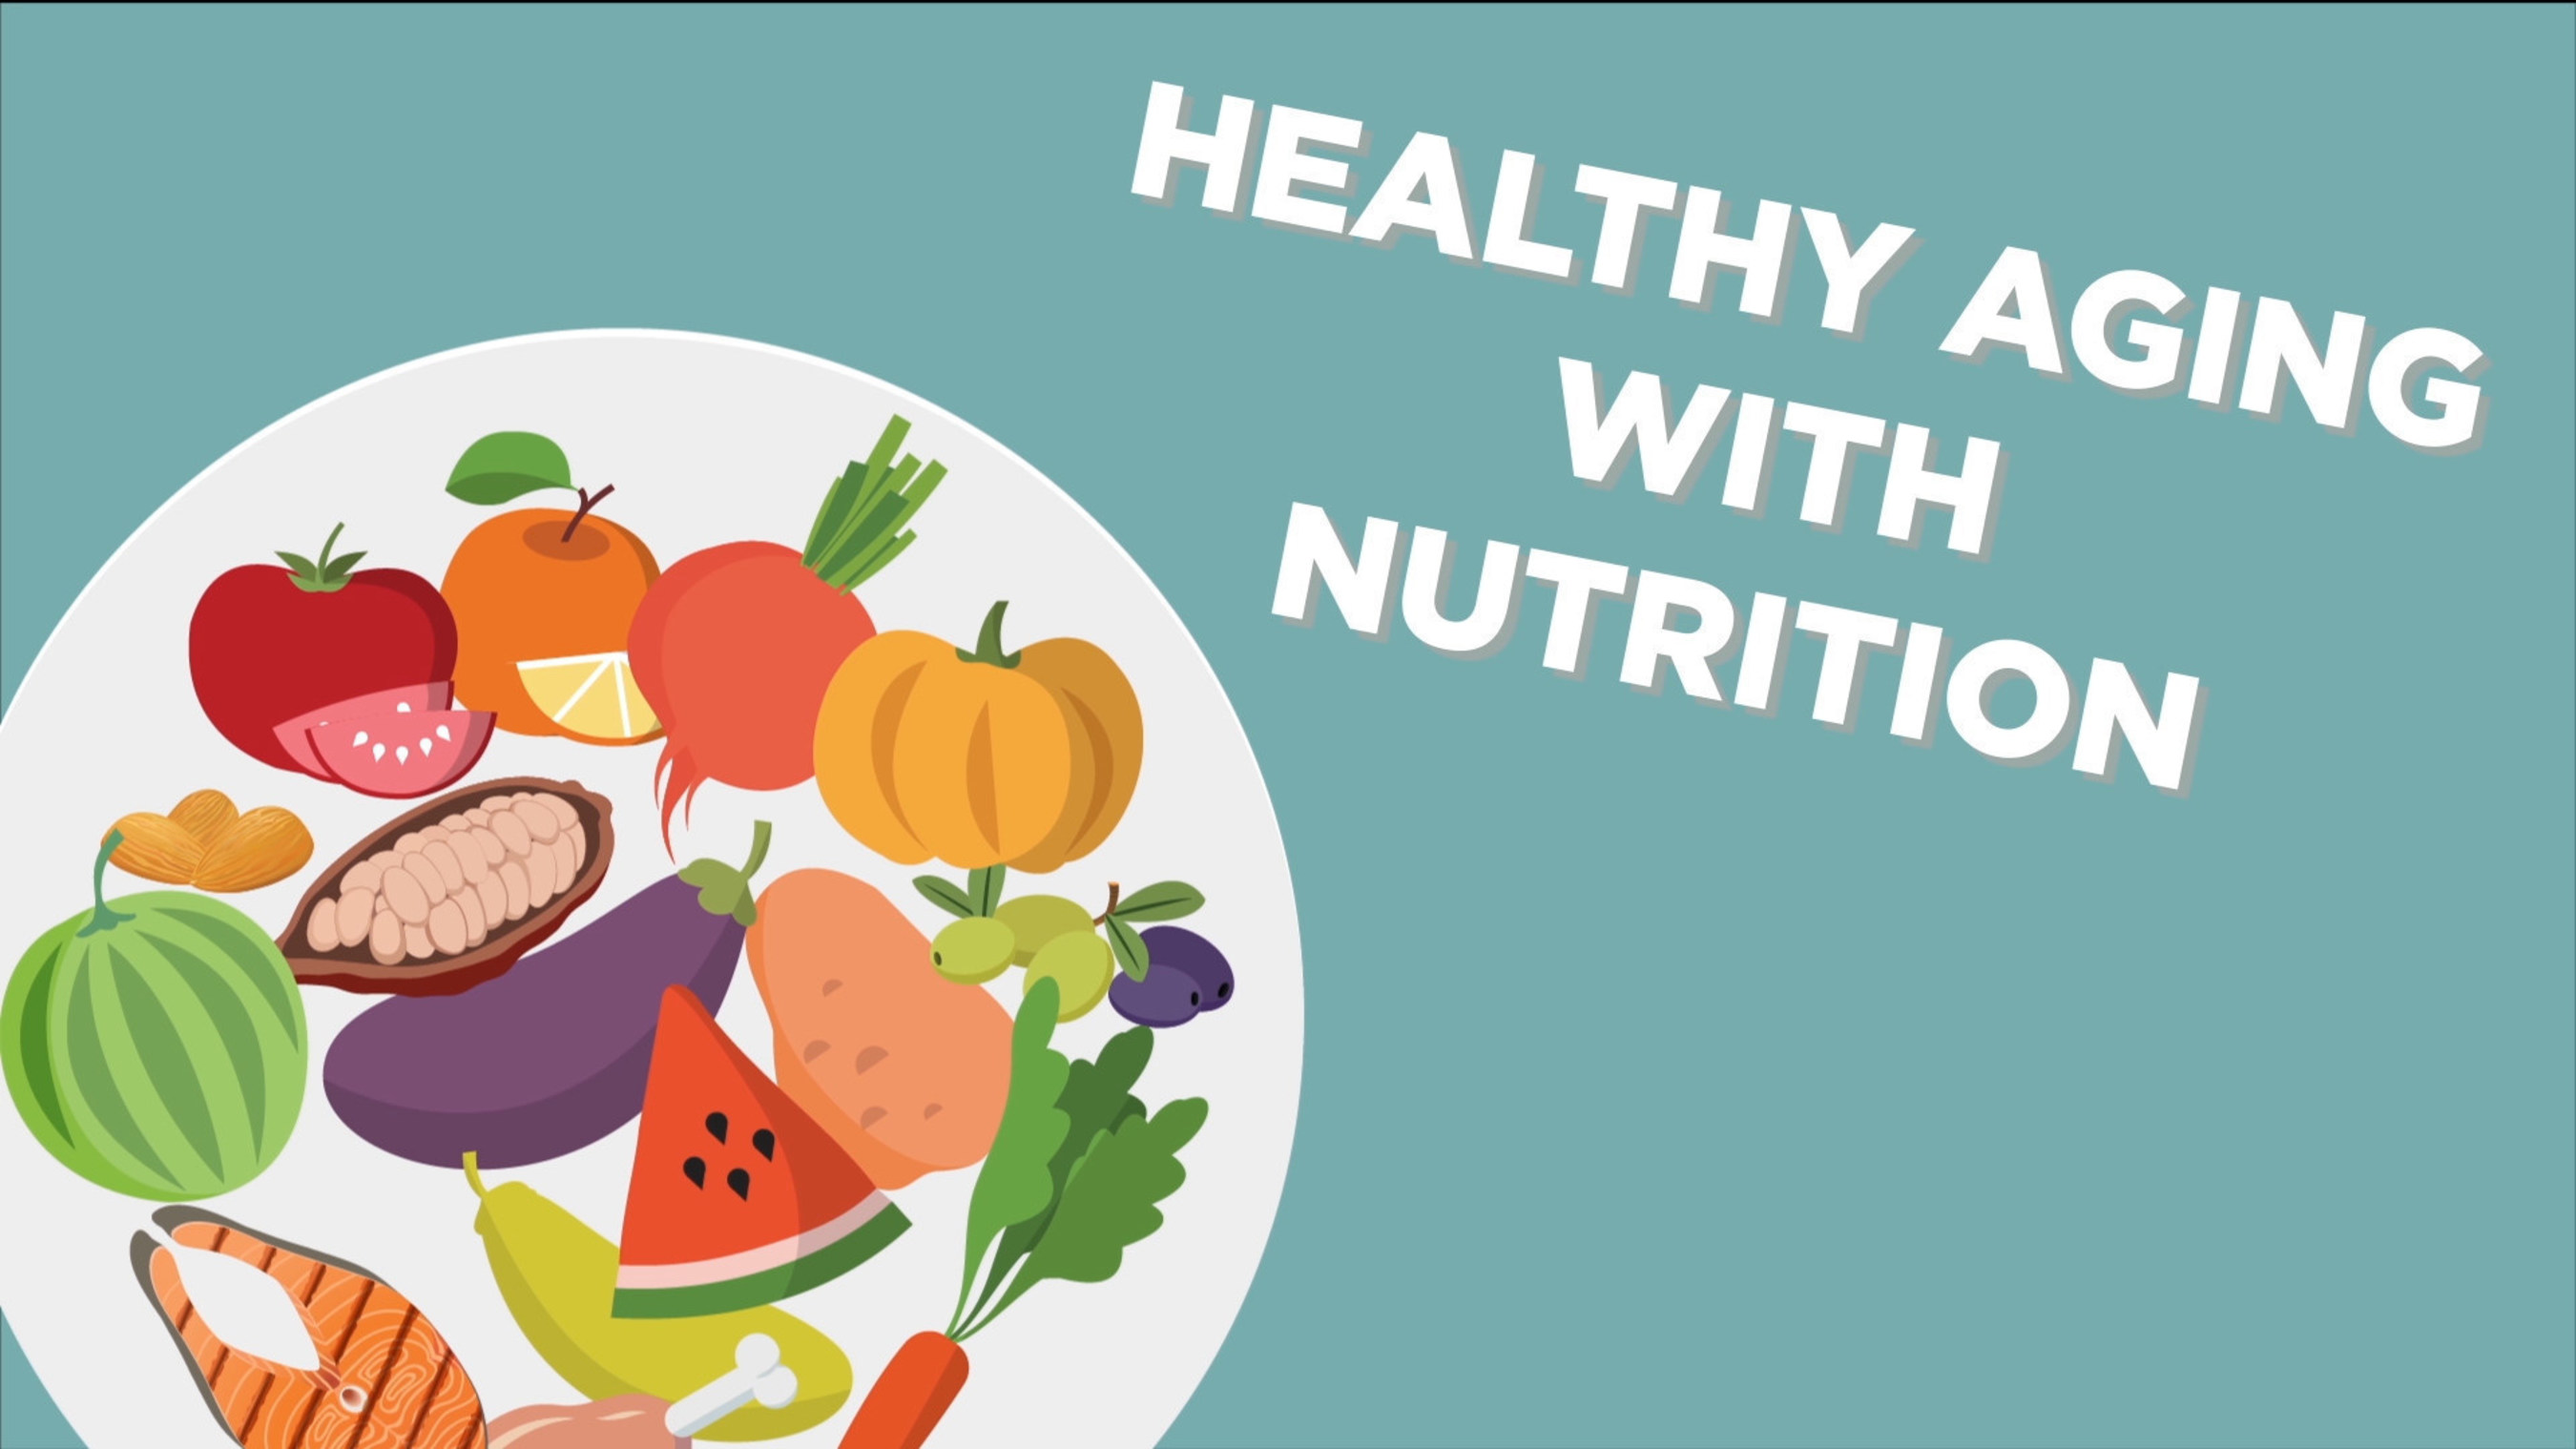 The films look at nutrition in three parts: nutrition and the process of aging, essential nutrients and safely turning to supplements, and improving cardiovascular health with nutrition.